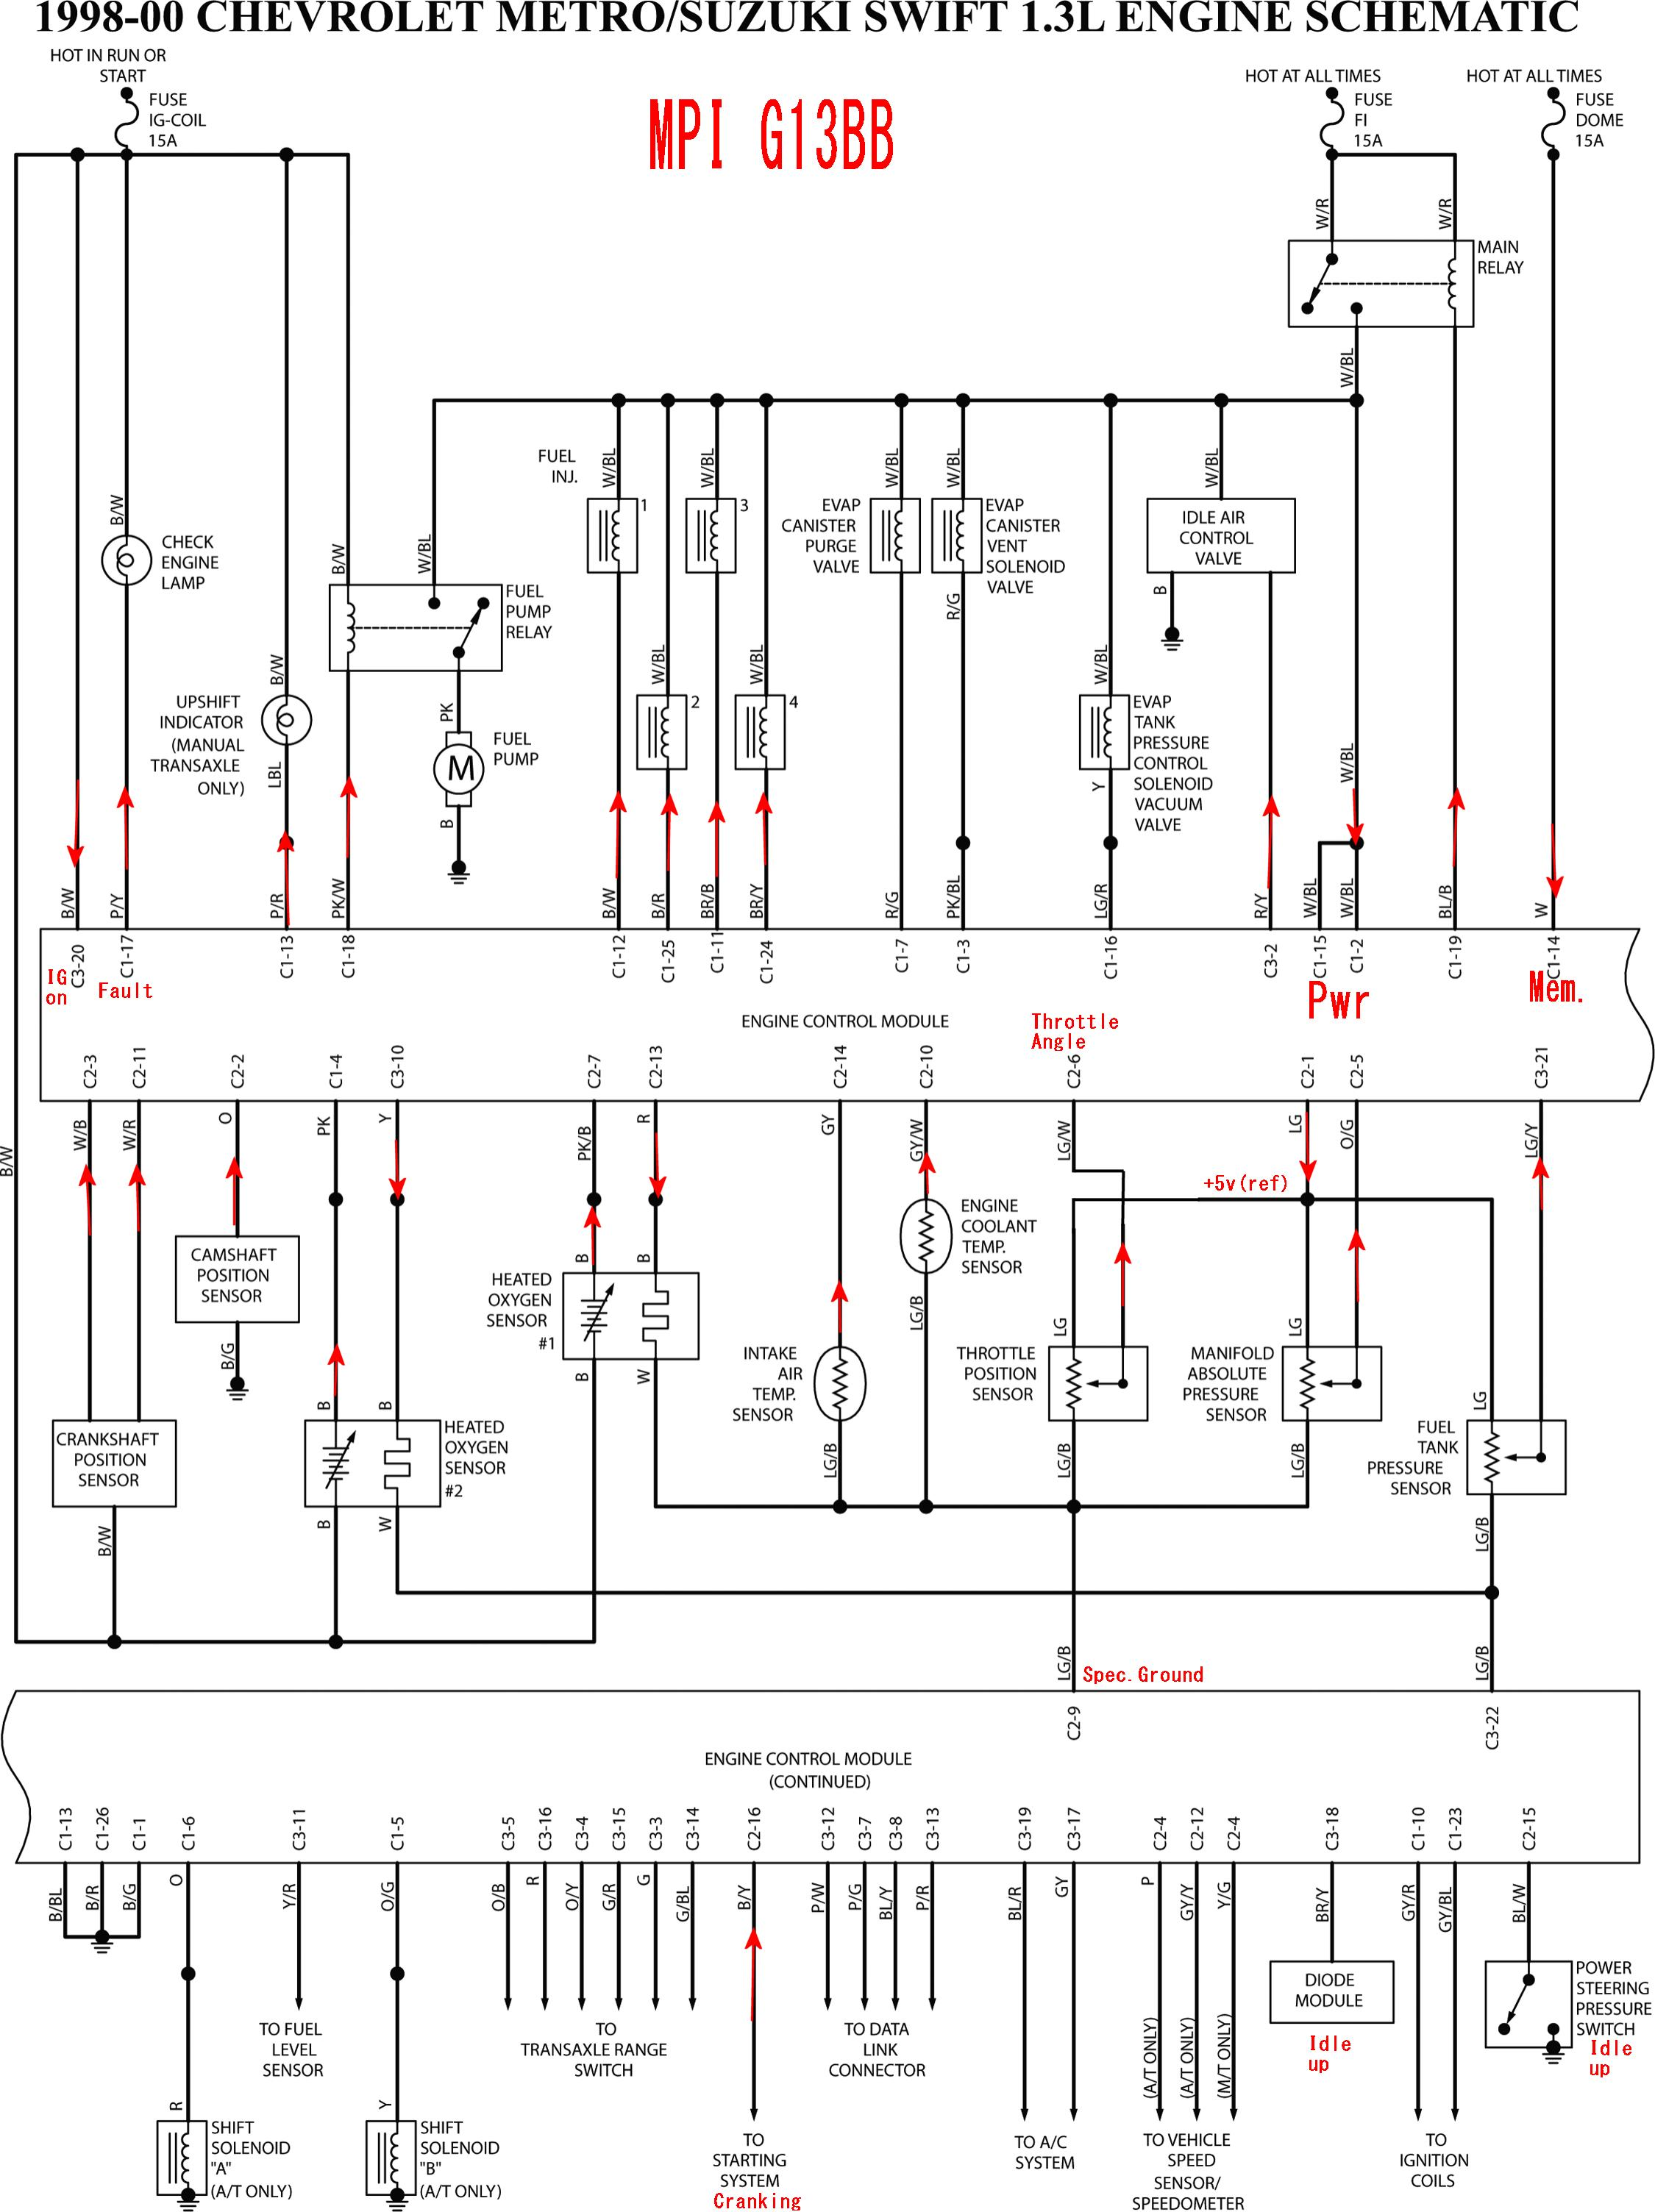 98 00G13metroMPI_001 suzuki swift or geo metro 1998 chevy metro wiring diagram at mifinder.co